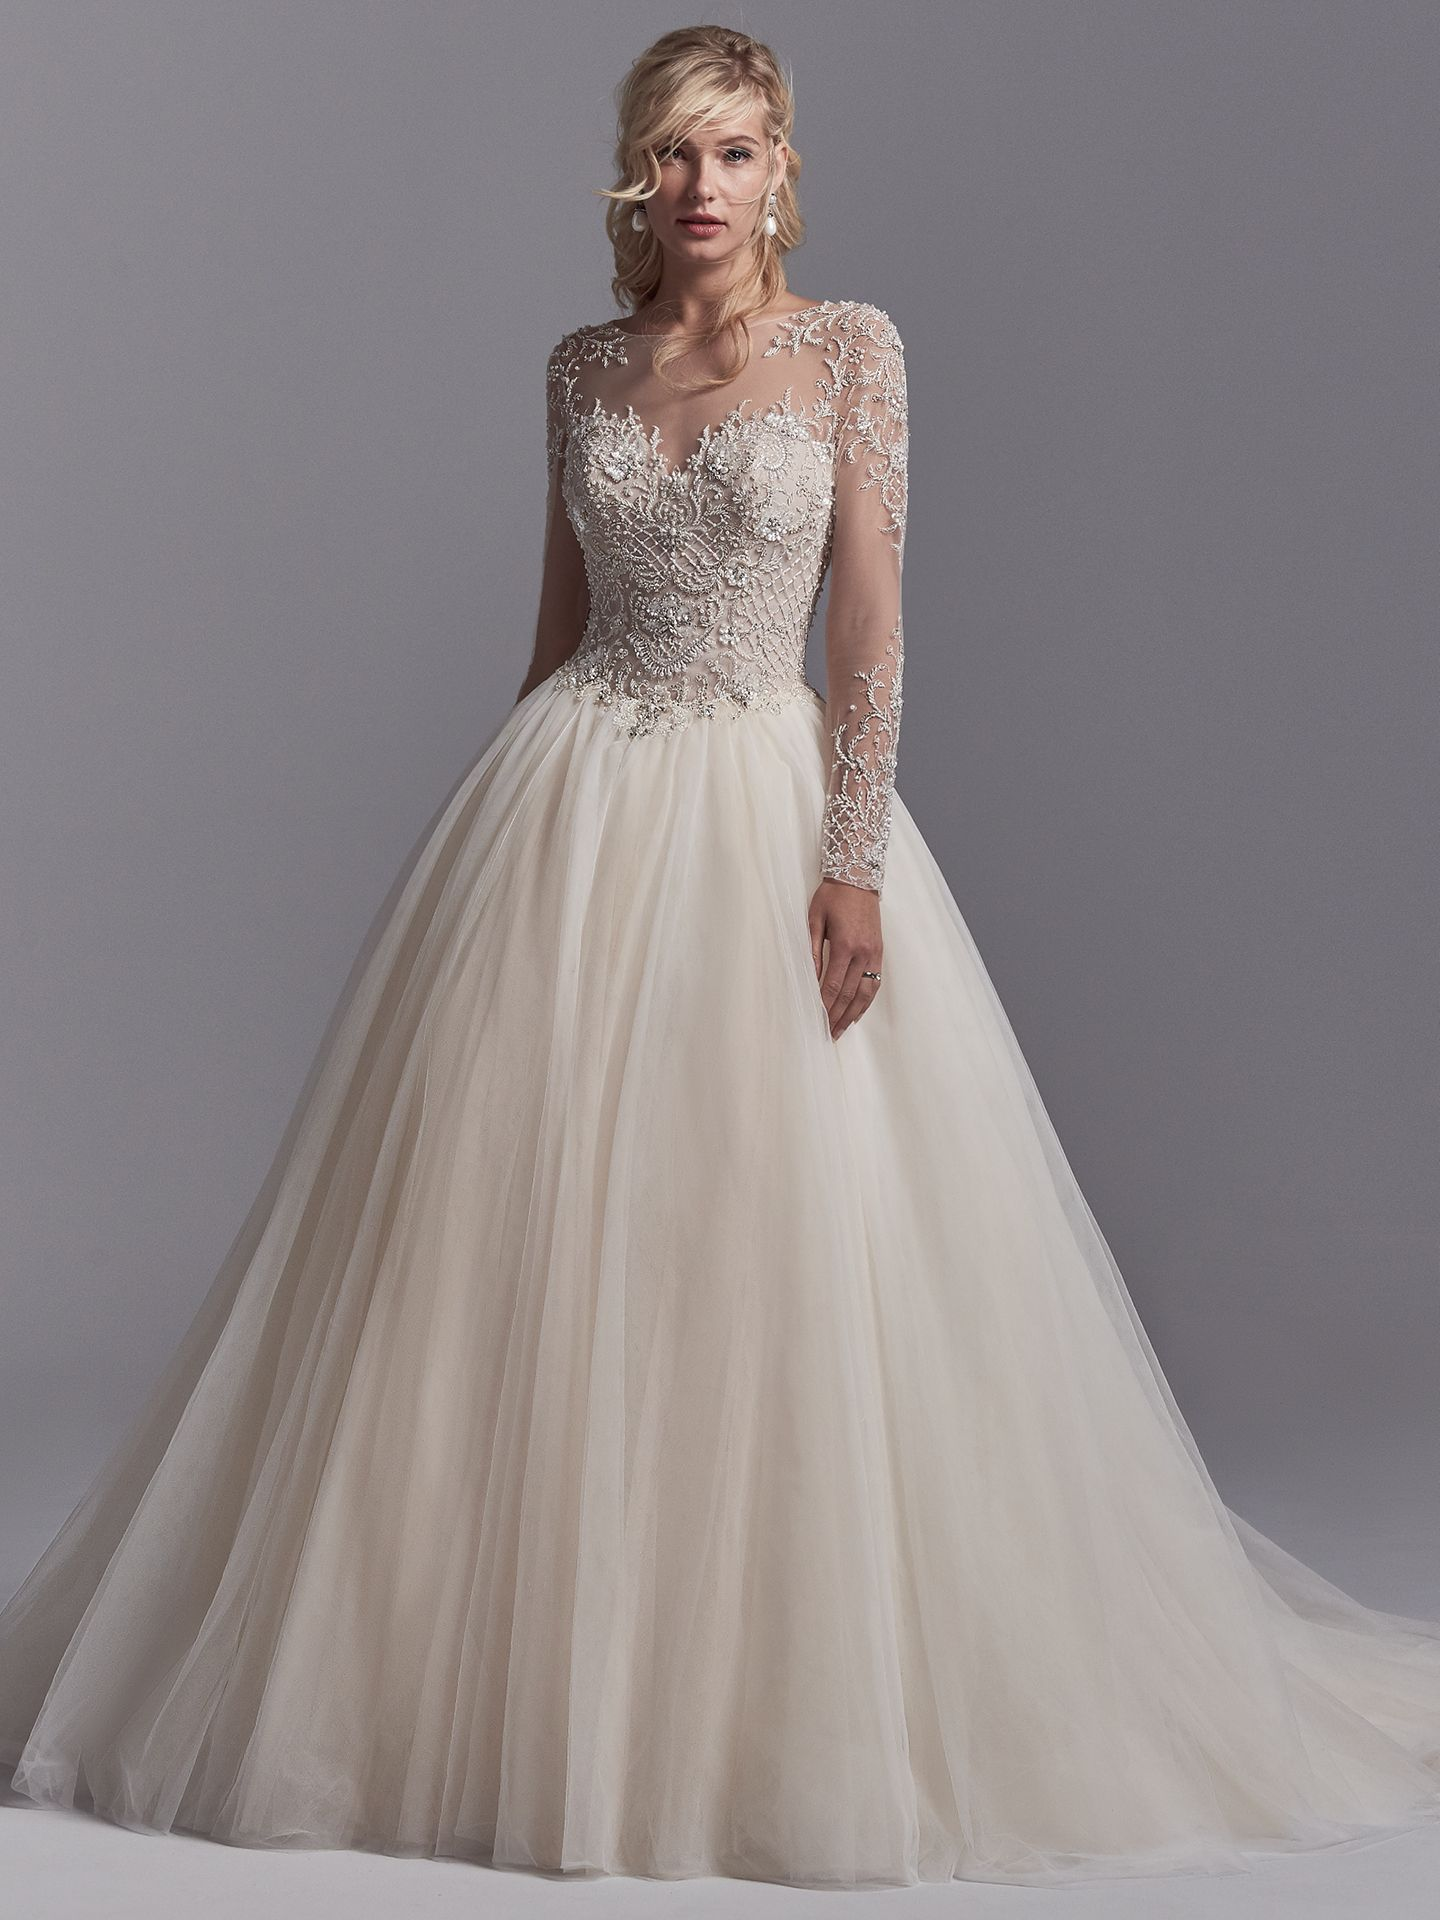 Calvin by Sottero and Midgley. This sleeved wedding gown features a bodice of beaded lace motifs accented in Swarovski crystals, accenting the illusion long-sleeves, illusion sweetheart neckline, and illusion V-back. Layers of tulle create the ballgown skirt. Finished with covered buttons over zipper closure. Princess Ballgowns For Royal Weddings